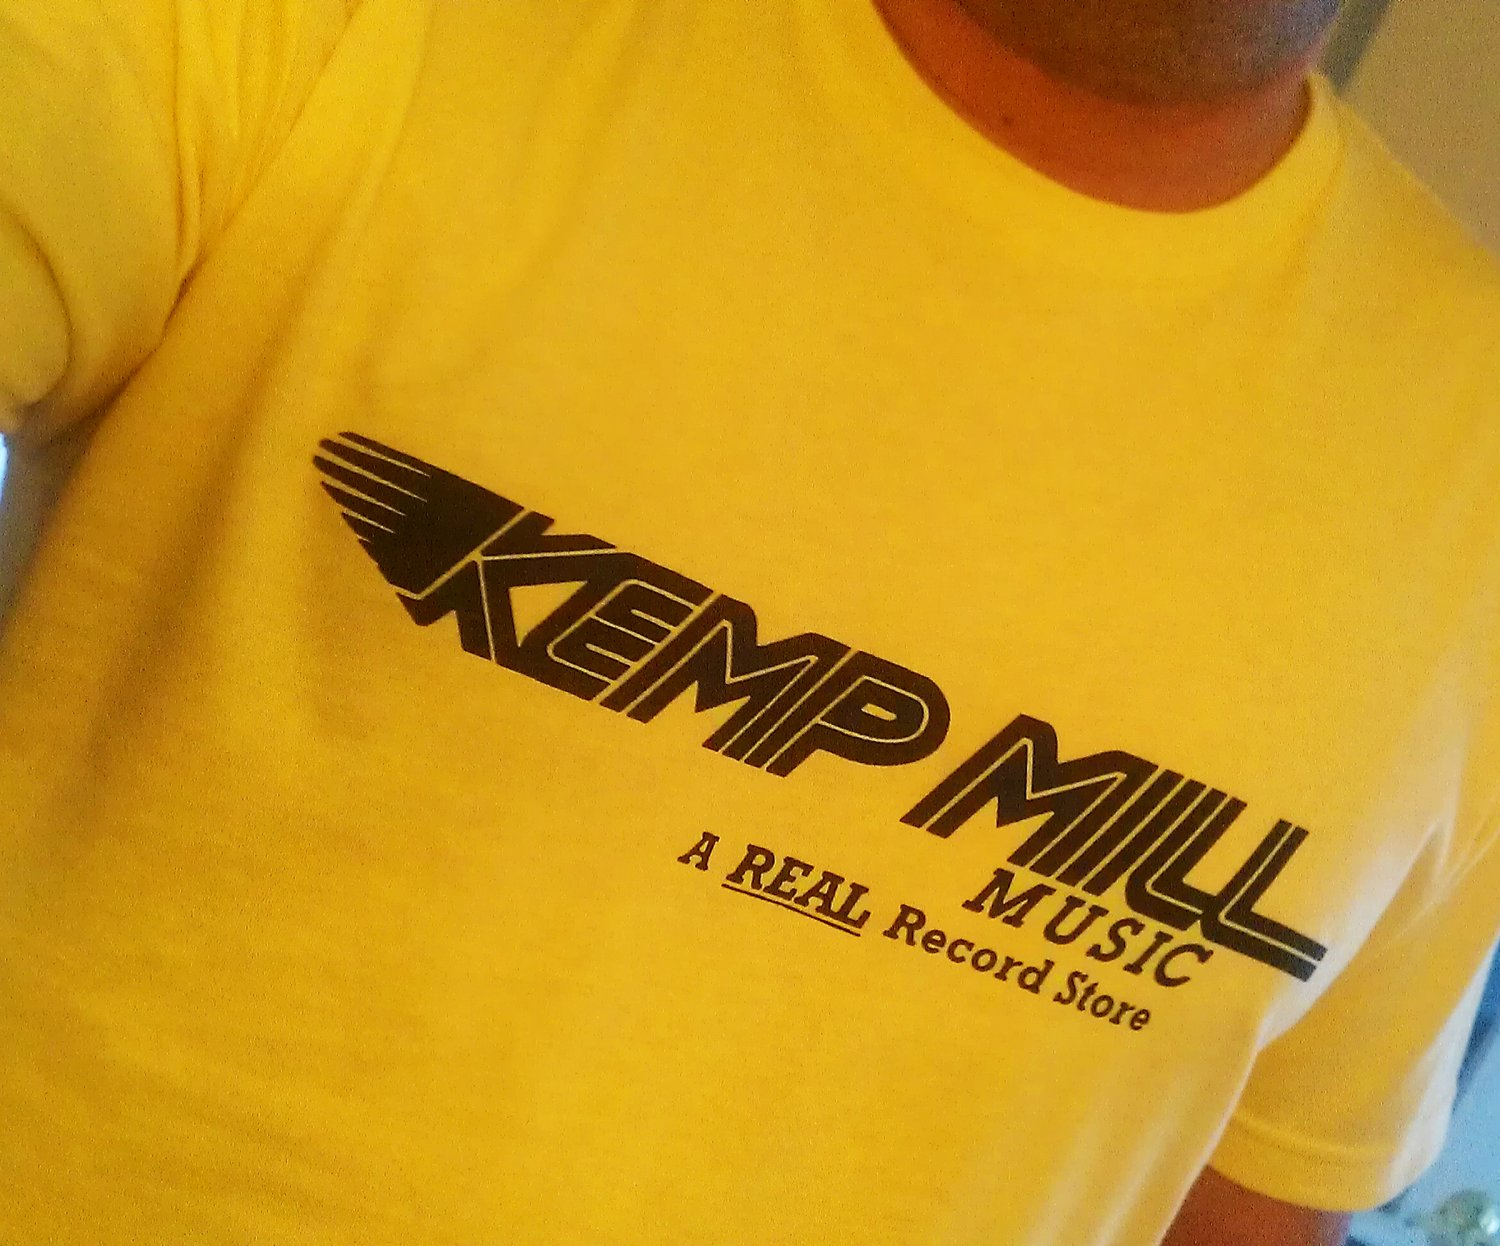 KEMP MILL MUSIC Premium Sueded Vintage Yellow T-shirt SIZE L 9:30 club whfs